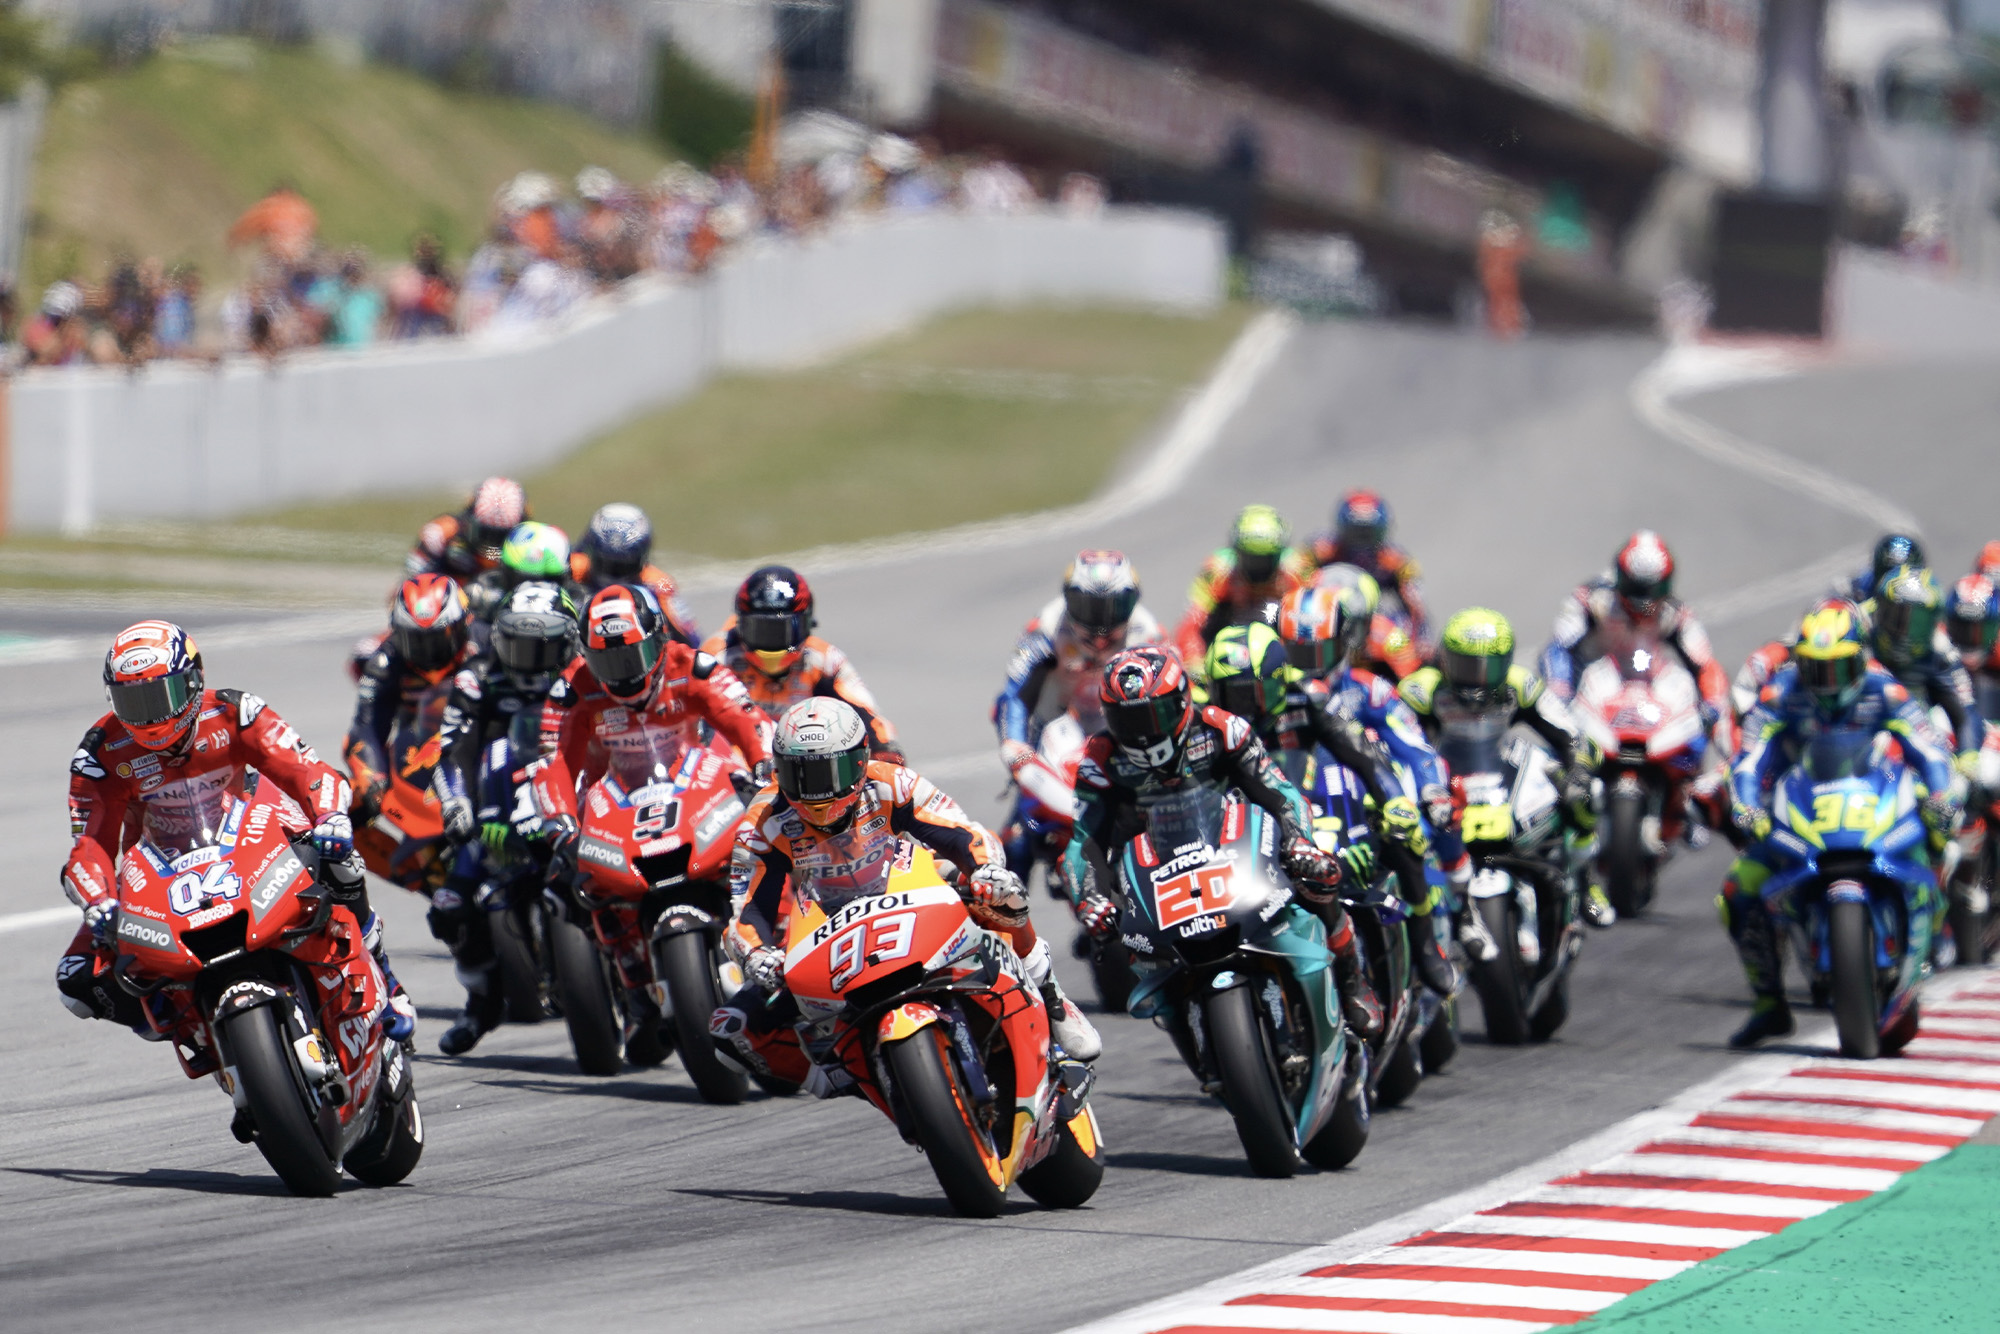 MotoGP faces its toughest season ever in 2020